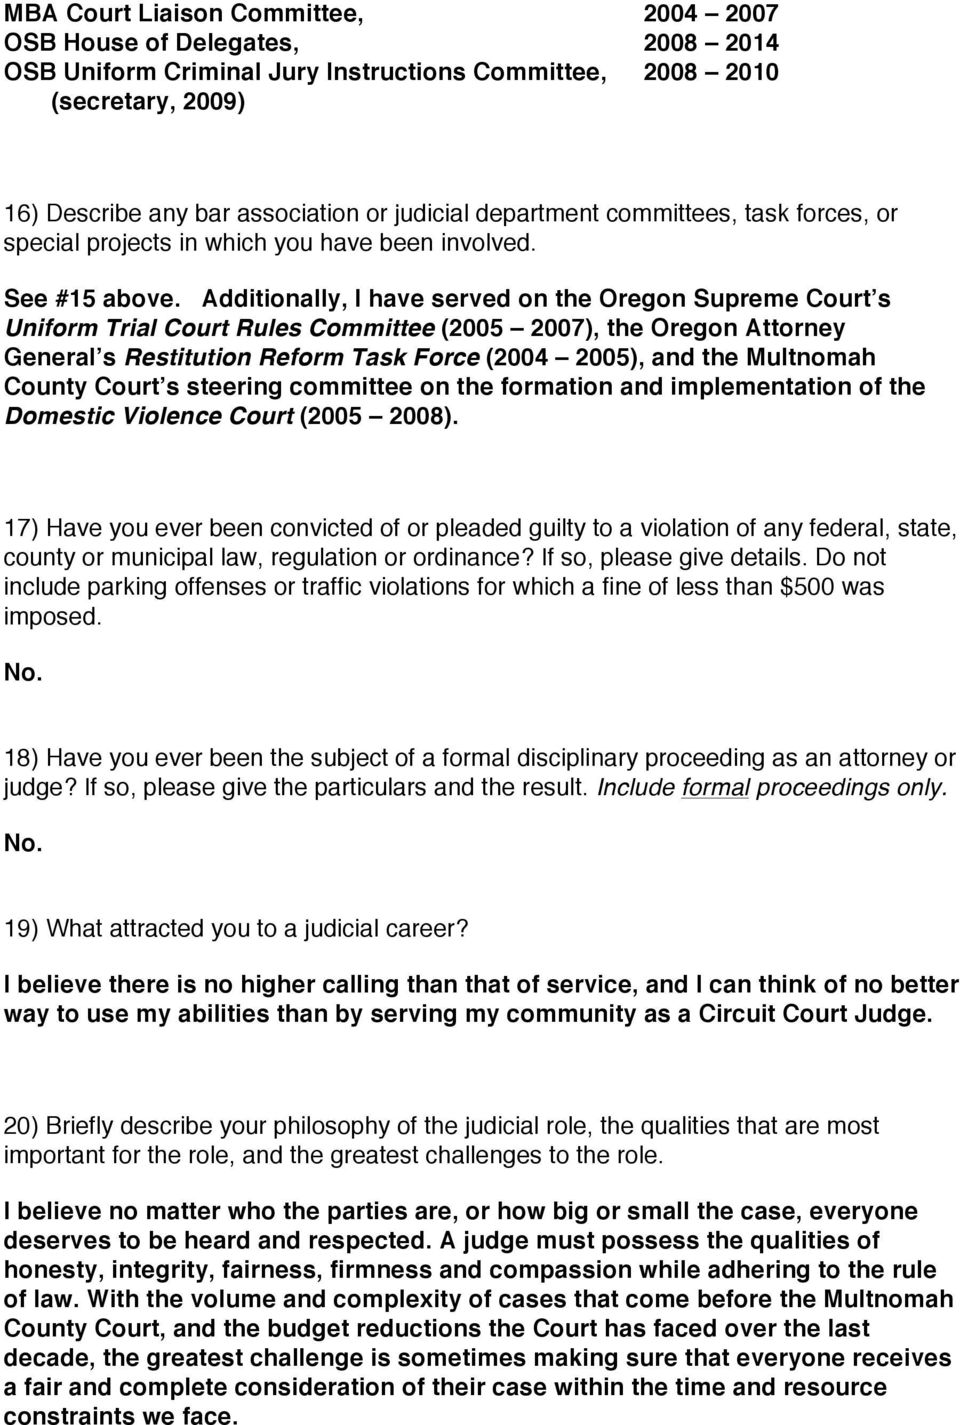 Additionally, I have served on the Oregon Supreme Court s Uniform Trial Court Rules Committee (2005 2007), the Oregon Attorney General s Restitution Reform Task Force (2004 2005), and the Multnomah